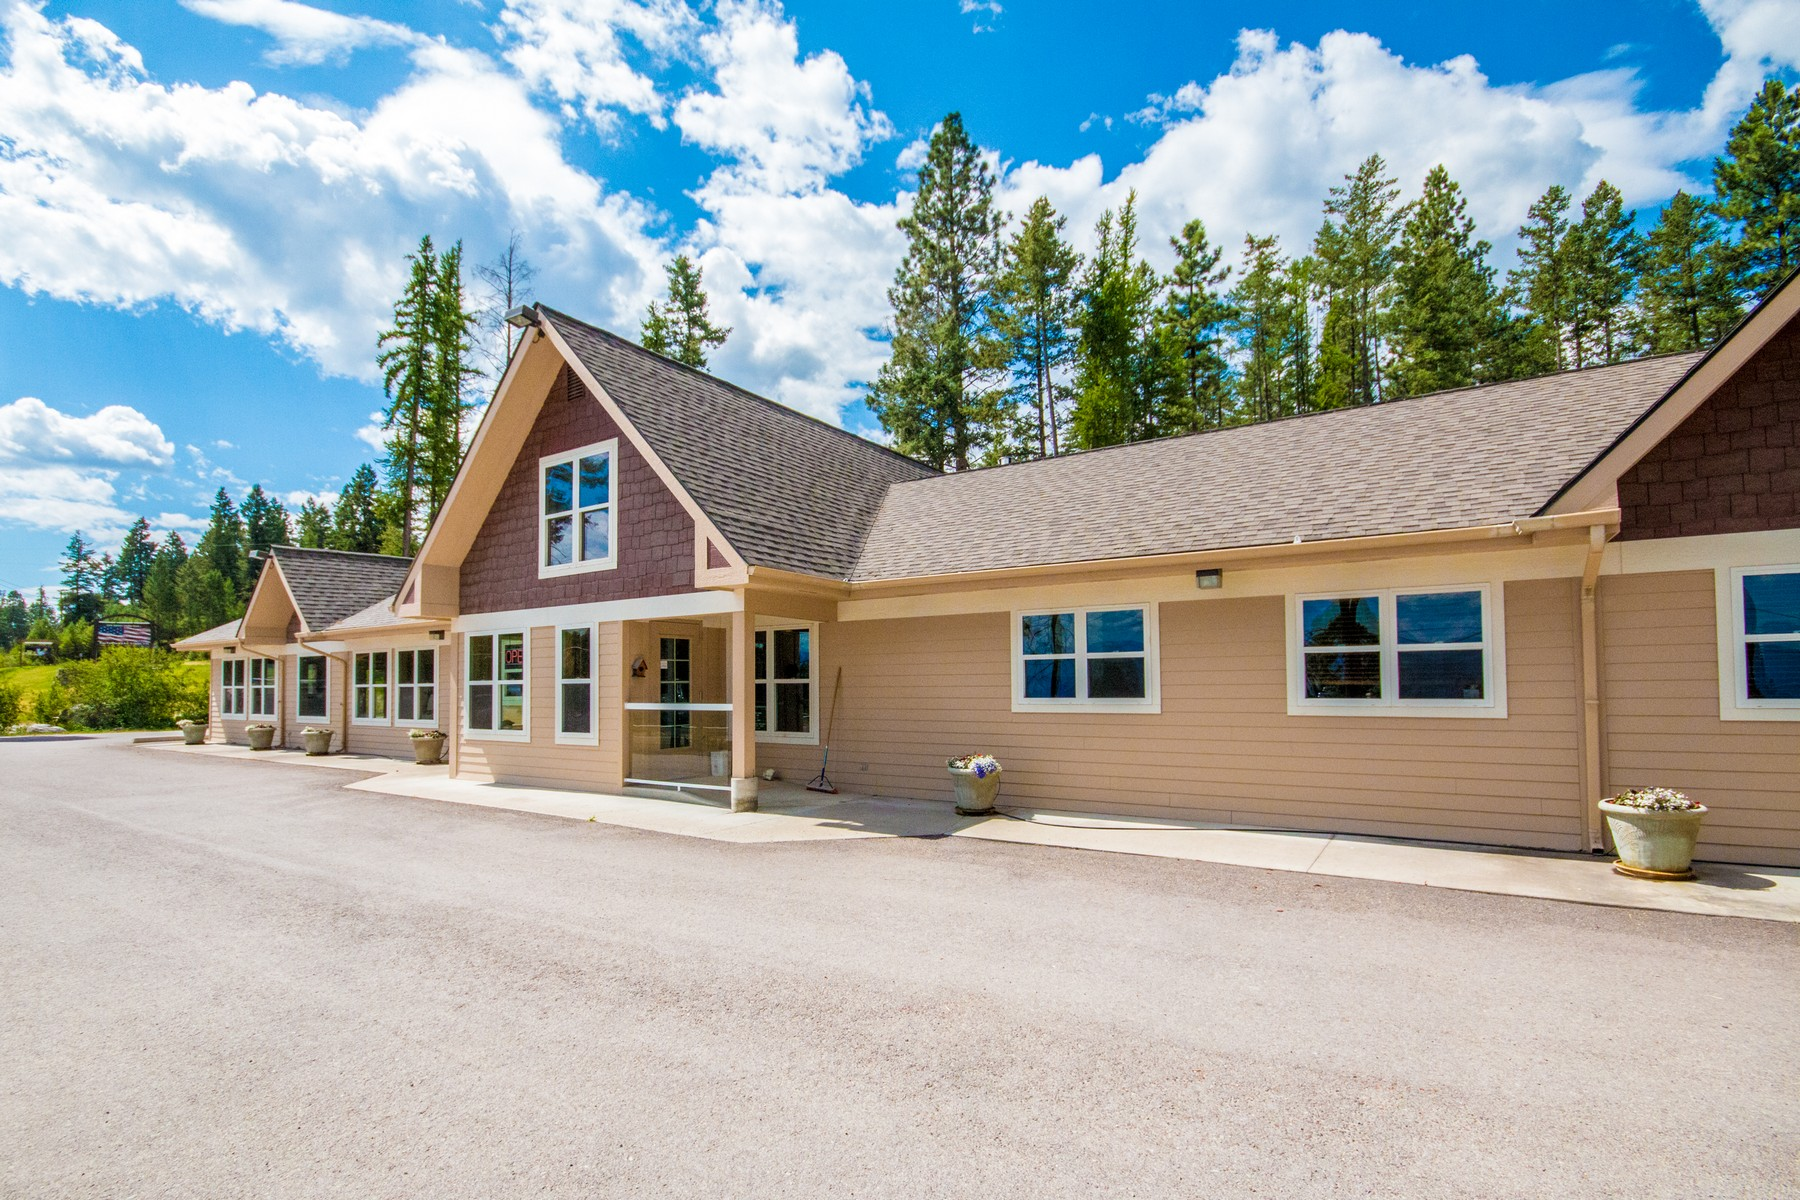 Commercial for Sale at 77 Deer Creek Road , Somers, MT 59932 77 Deer Creek Rd Somers, Montana 59932 United States